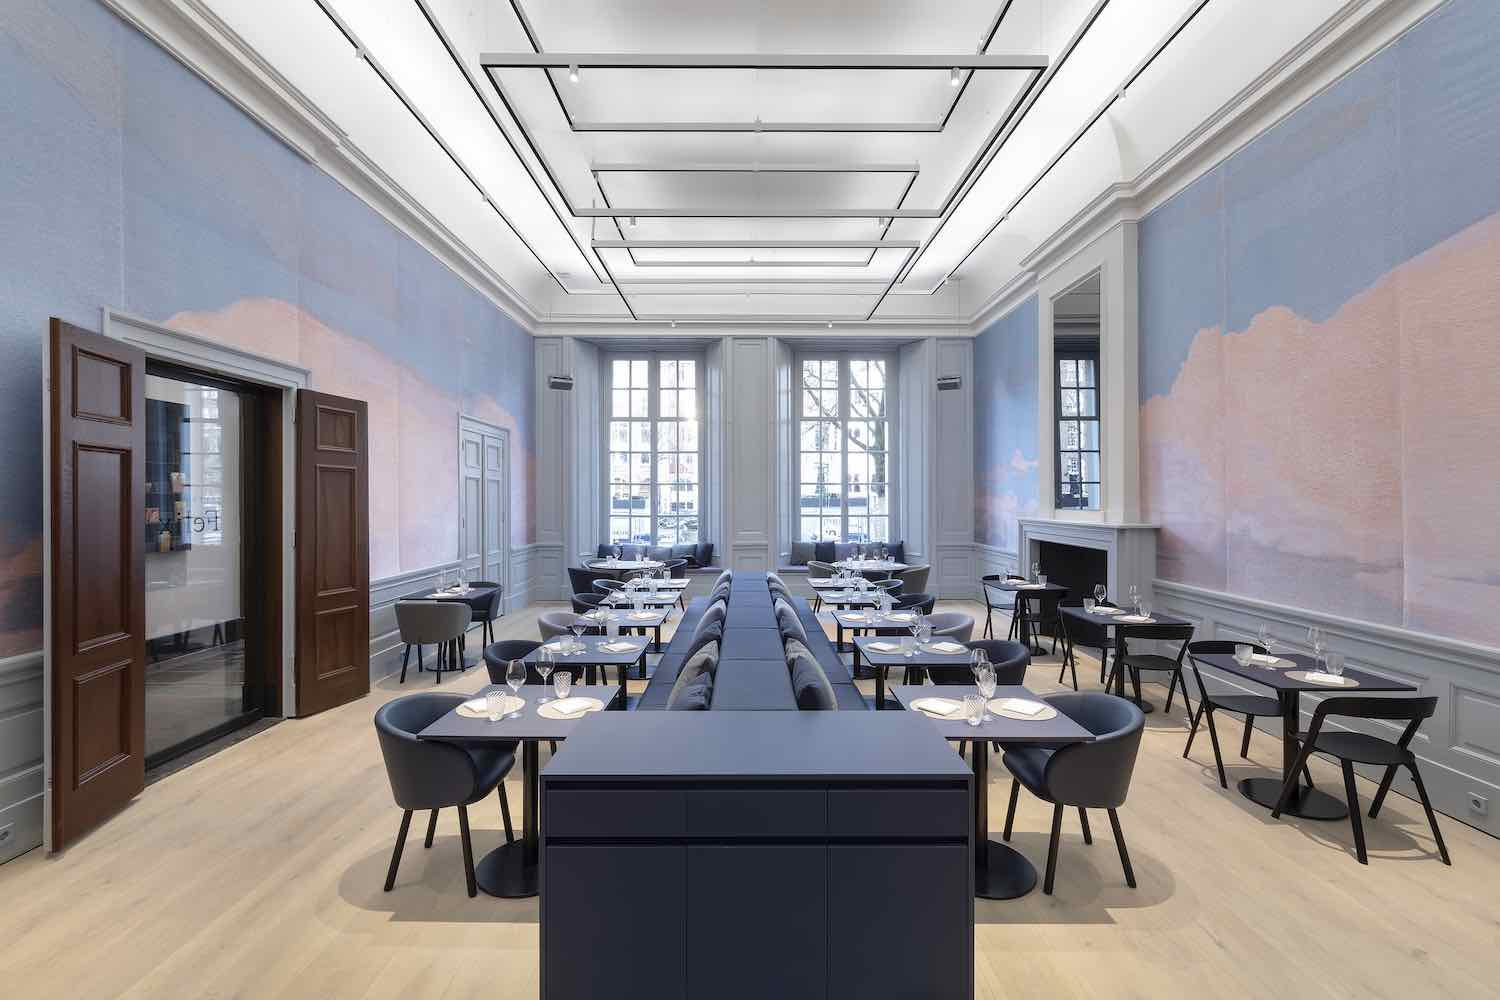 Felix Mertis by i29, restaurant - Photo by Ewout Huibers, courtesy of i29